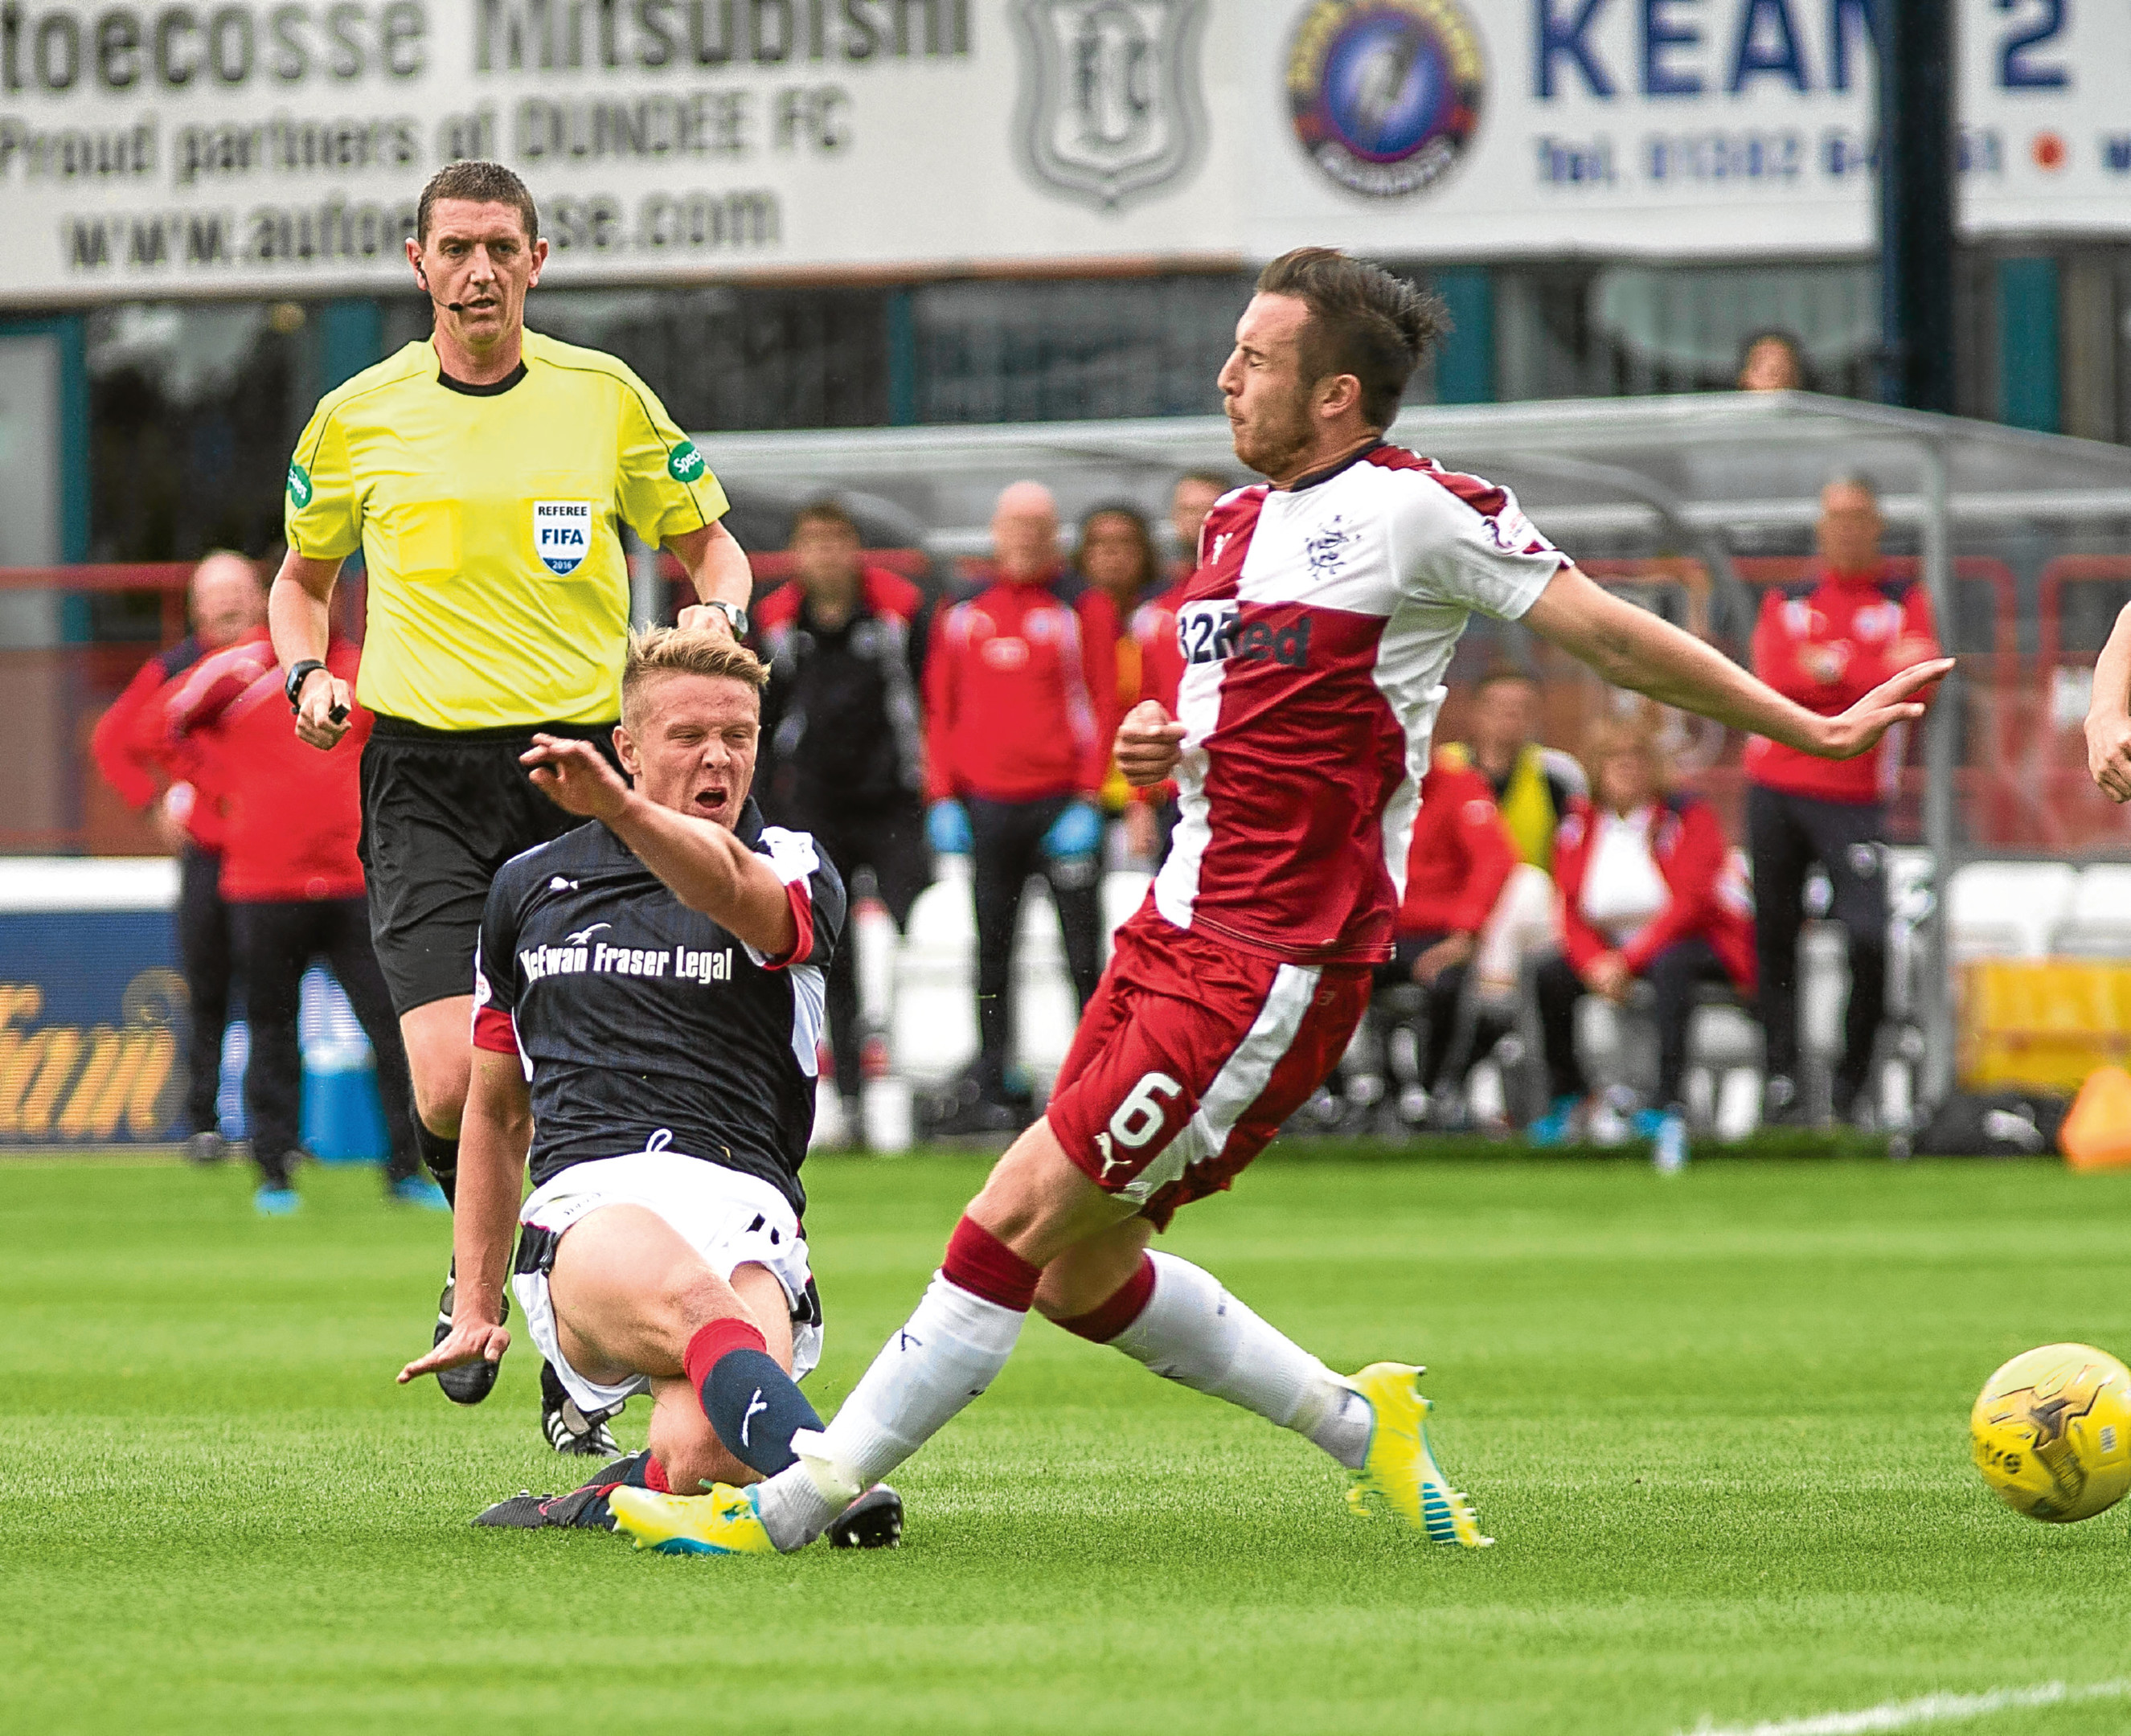 Dundee midfielder Mark O'Hara gets a shot away despite the attentions of Rangers defender Danny Wilson at Dens on Saturday. Picture by David Young